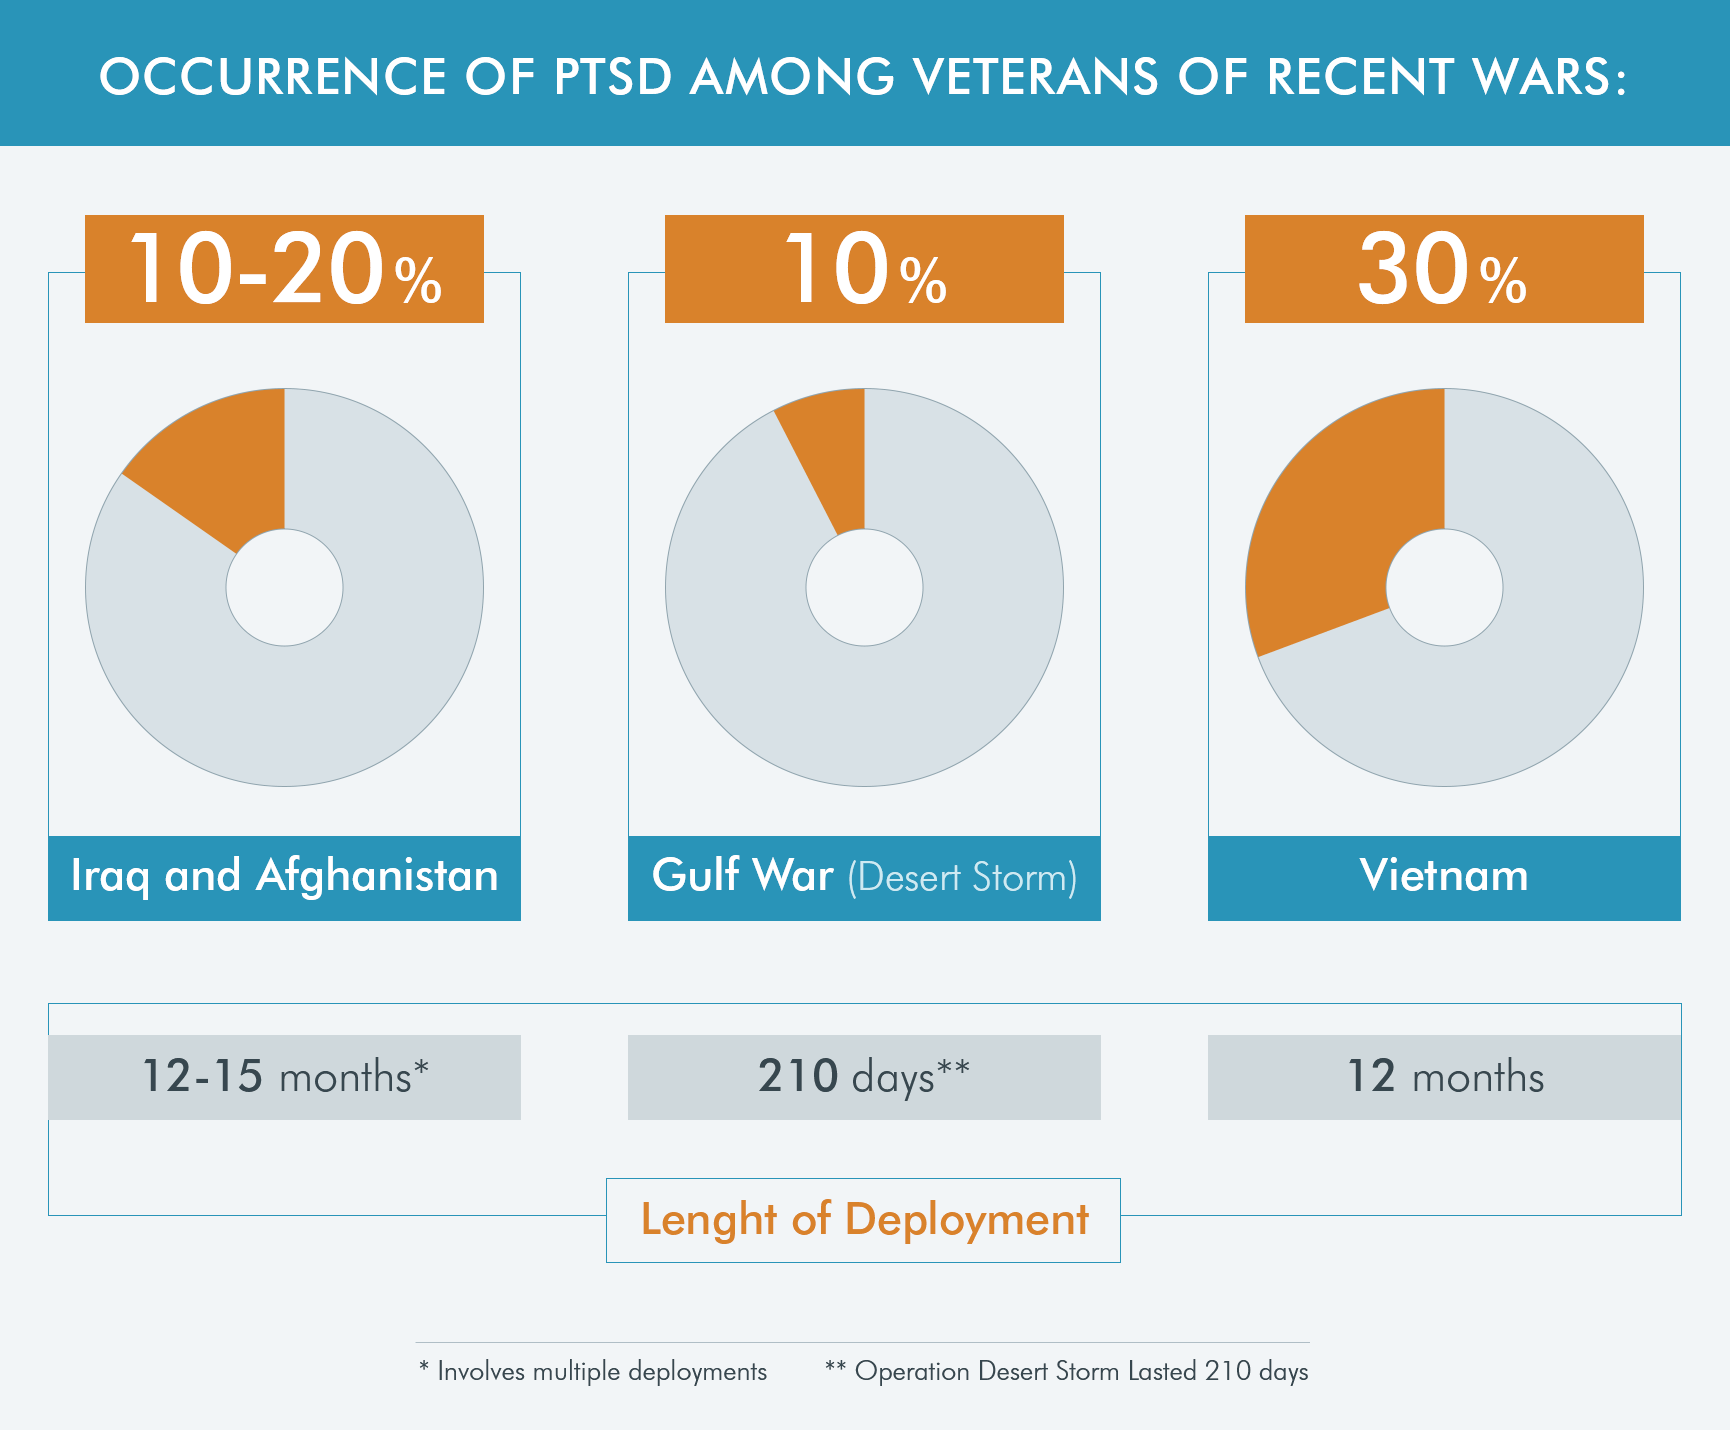 PTSD data on veterans of wars in Iraq, Afghanistan, Gulf War, and Vietnam